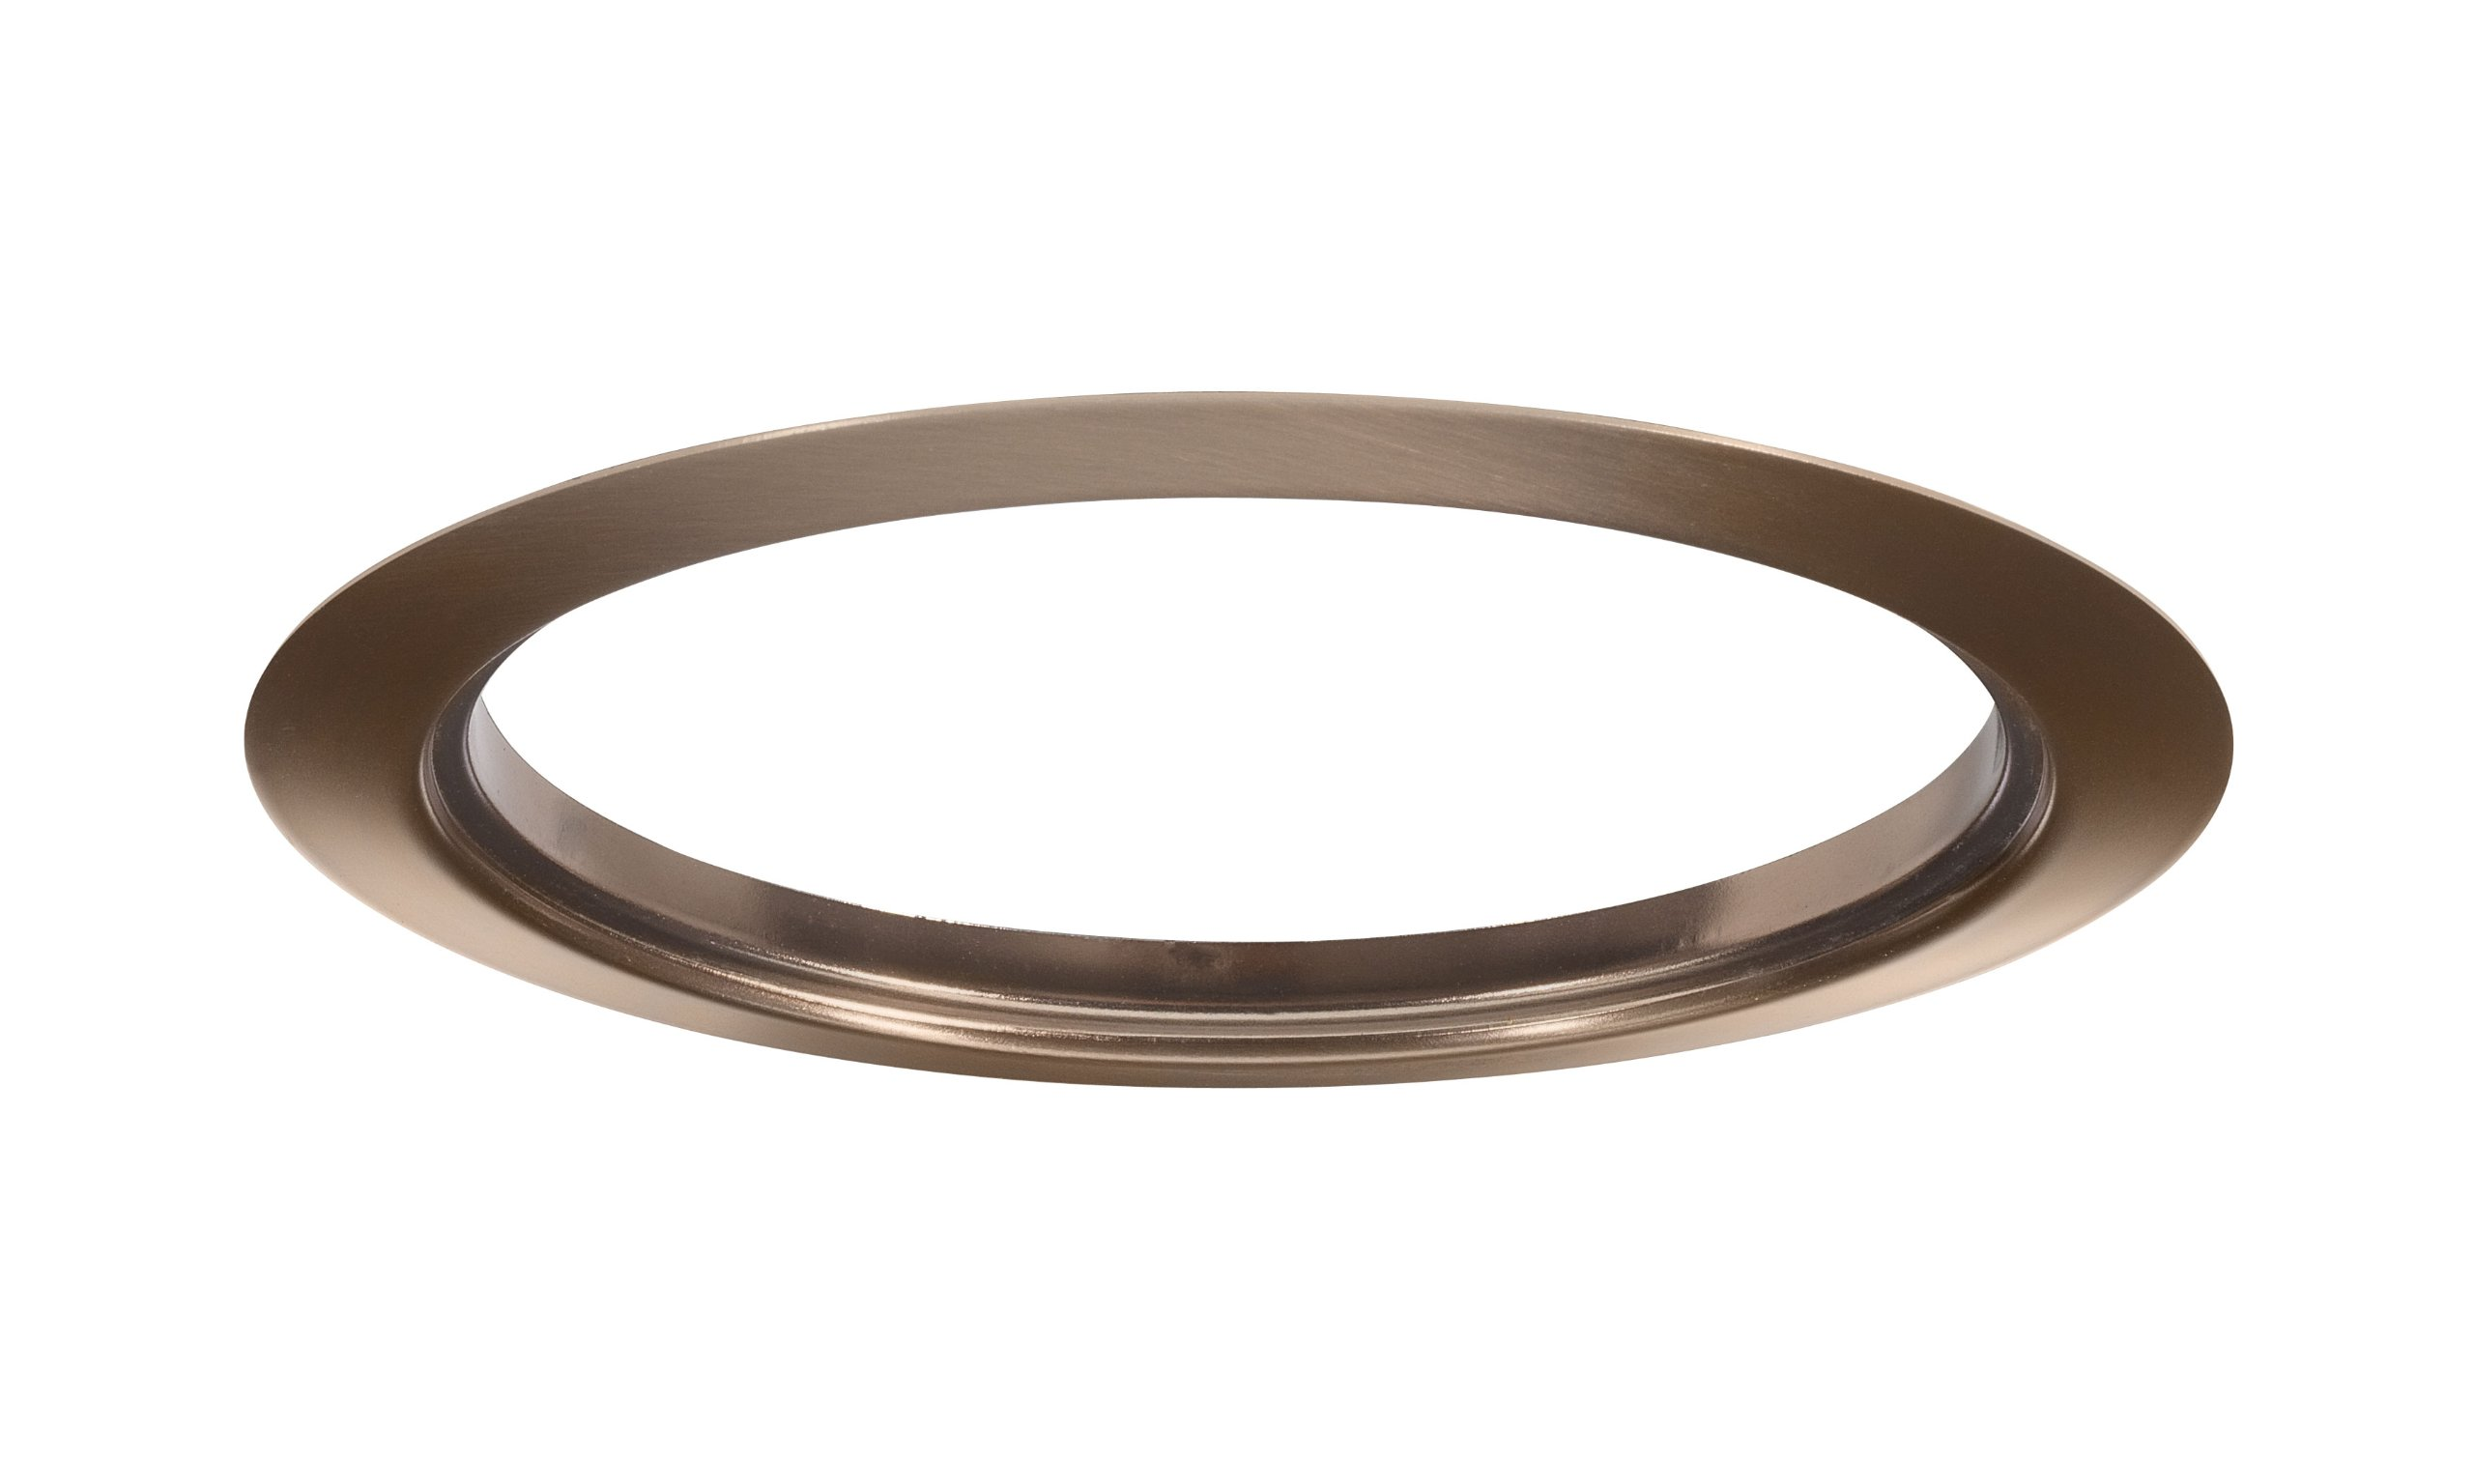 Juno Lighting TR6-ABZ 6-Inch Classic Aged Bronze Trim Ring by Juno Lighting Group